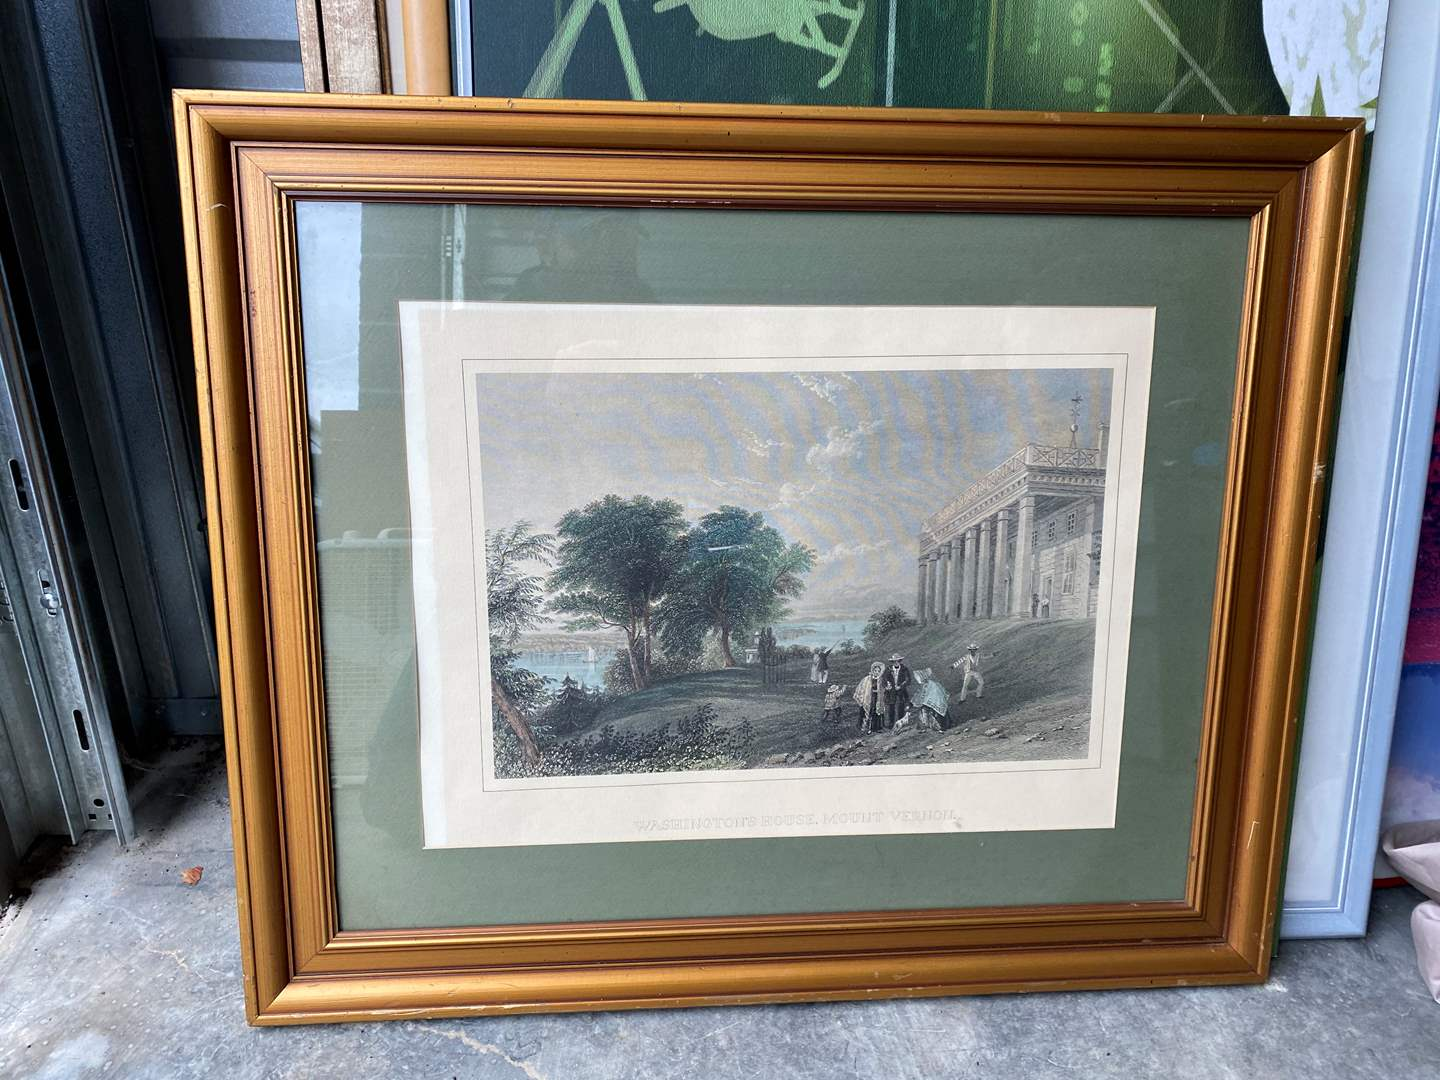 Lot # 26 - Framed Lithograph of Washington's House, Mount Vernon (main image)